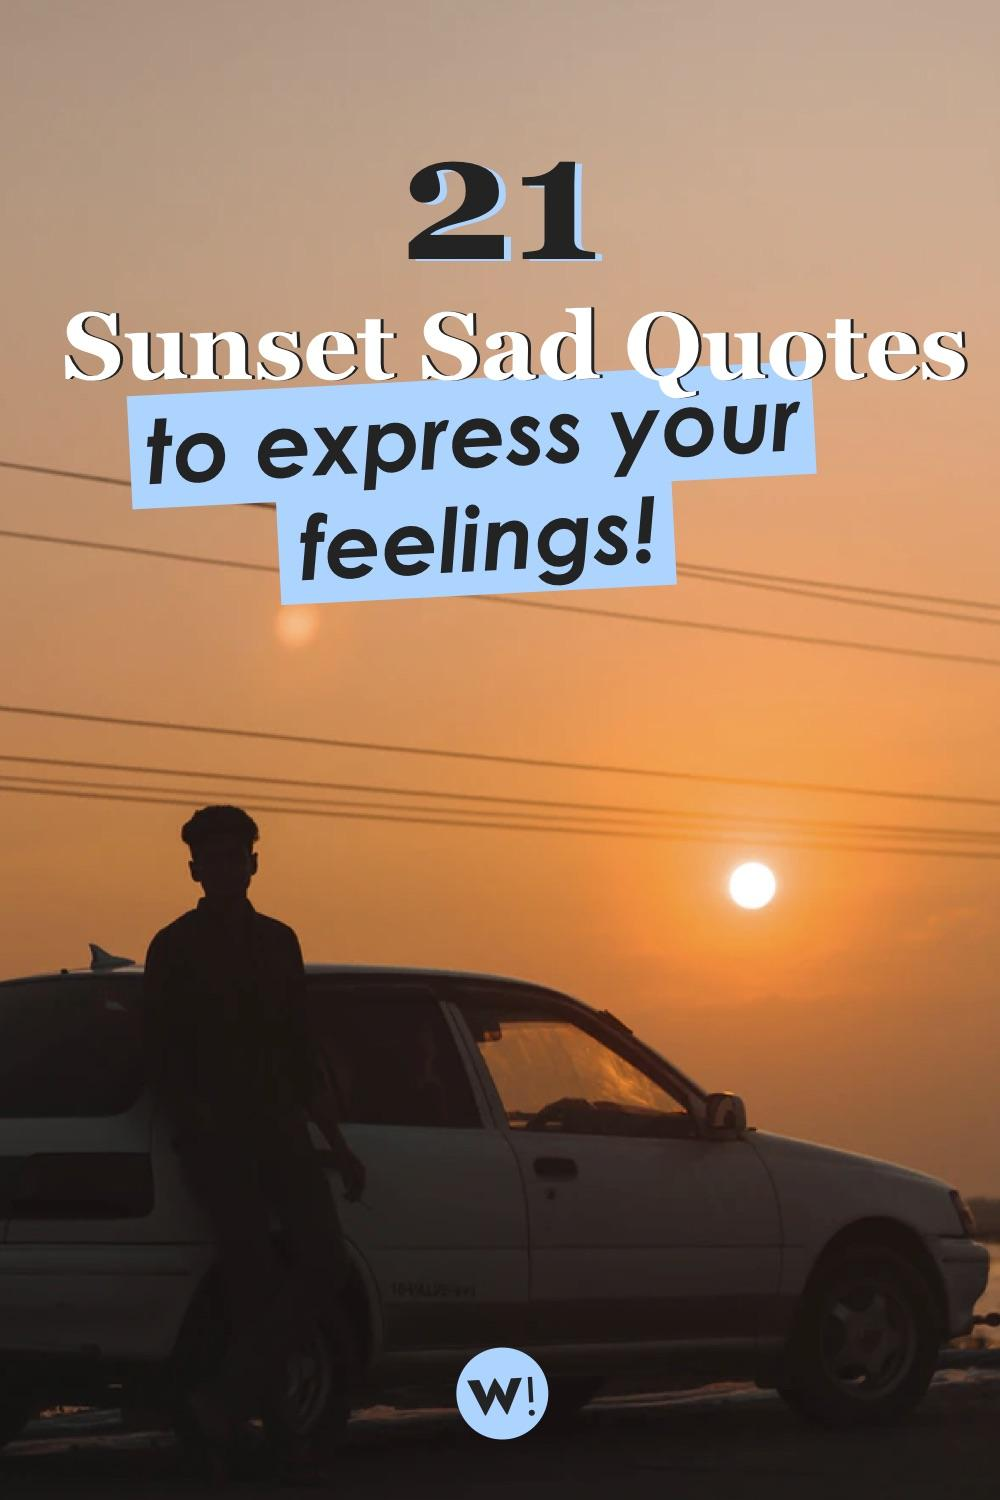 It's ok to be sad sometimes. Even when watching the sunset. Are you looking for sunset sad quotes to express your feelings? Or maybe in need of sad sunset quotes to help you cheer up? I've got exactly what you need! sunset deep quotes |sunset deep thoughts